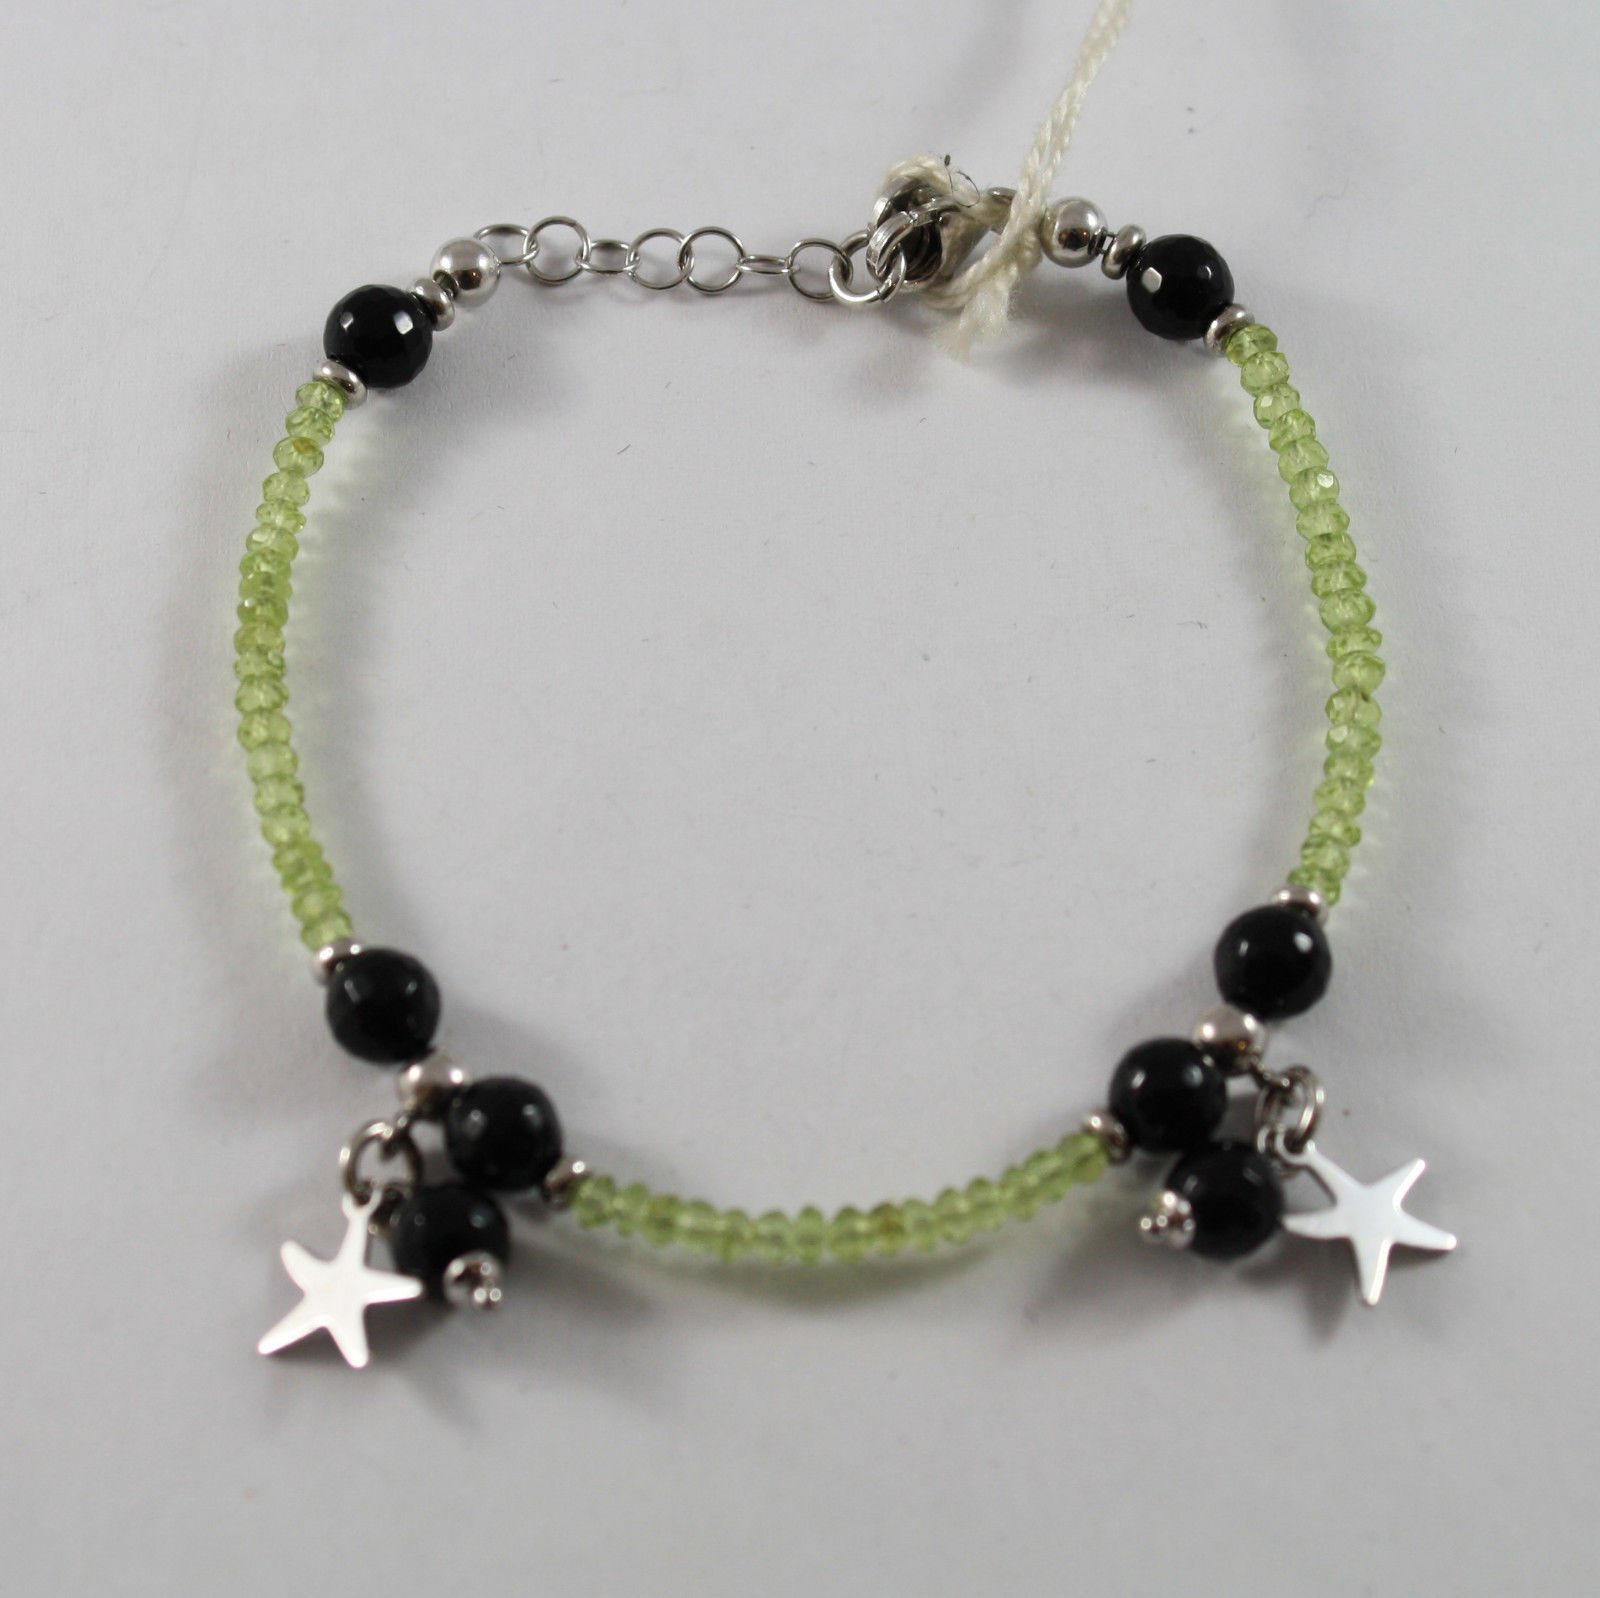 .925 RHODIUM SILVER BRACELET WITH GREEN PERIDOT, BLACK ONYX AND STARS